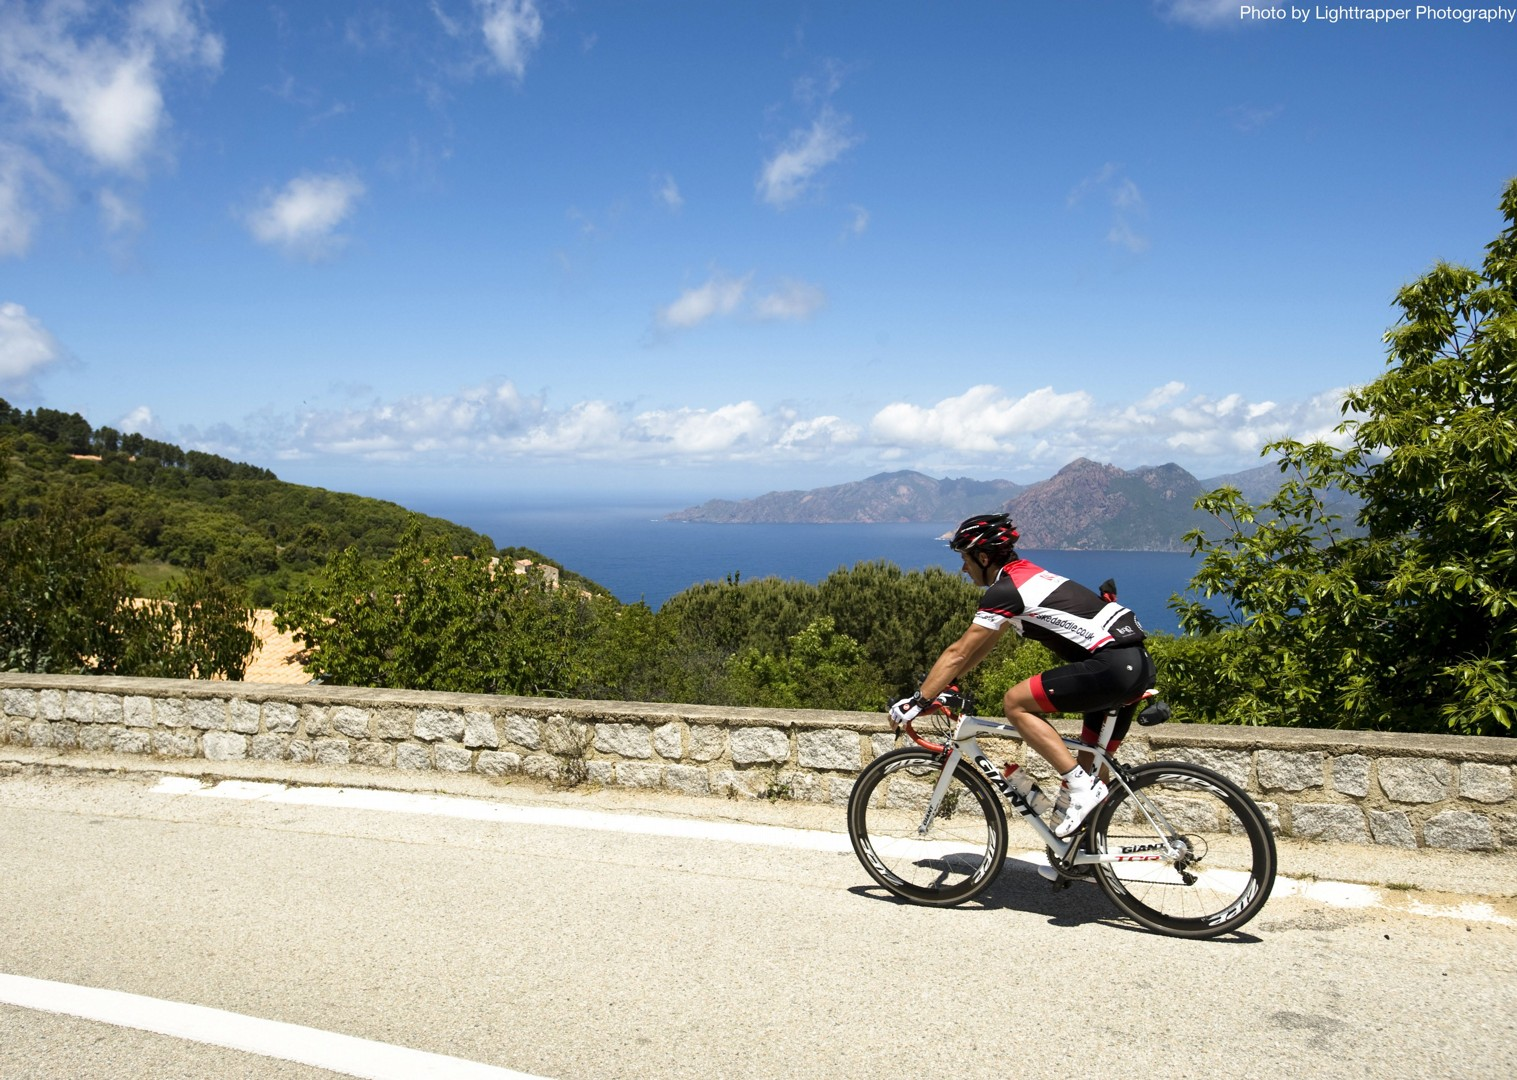 road-cycling-holiday-in-france-in-corsica.jpg - France - Corsica - Southern Secrets - Guided Road Cycling Holiday - Road Cycling